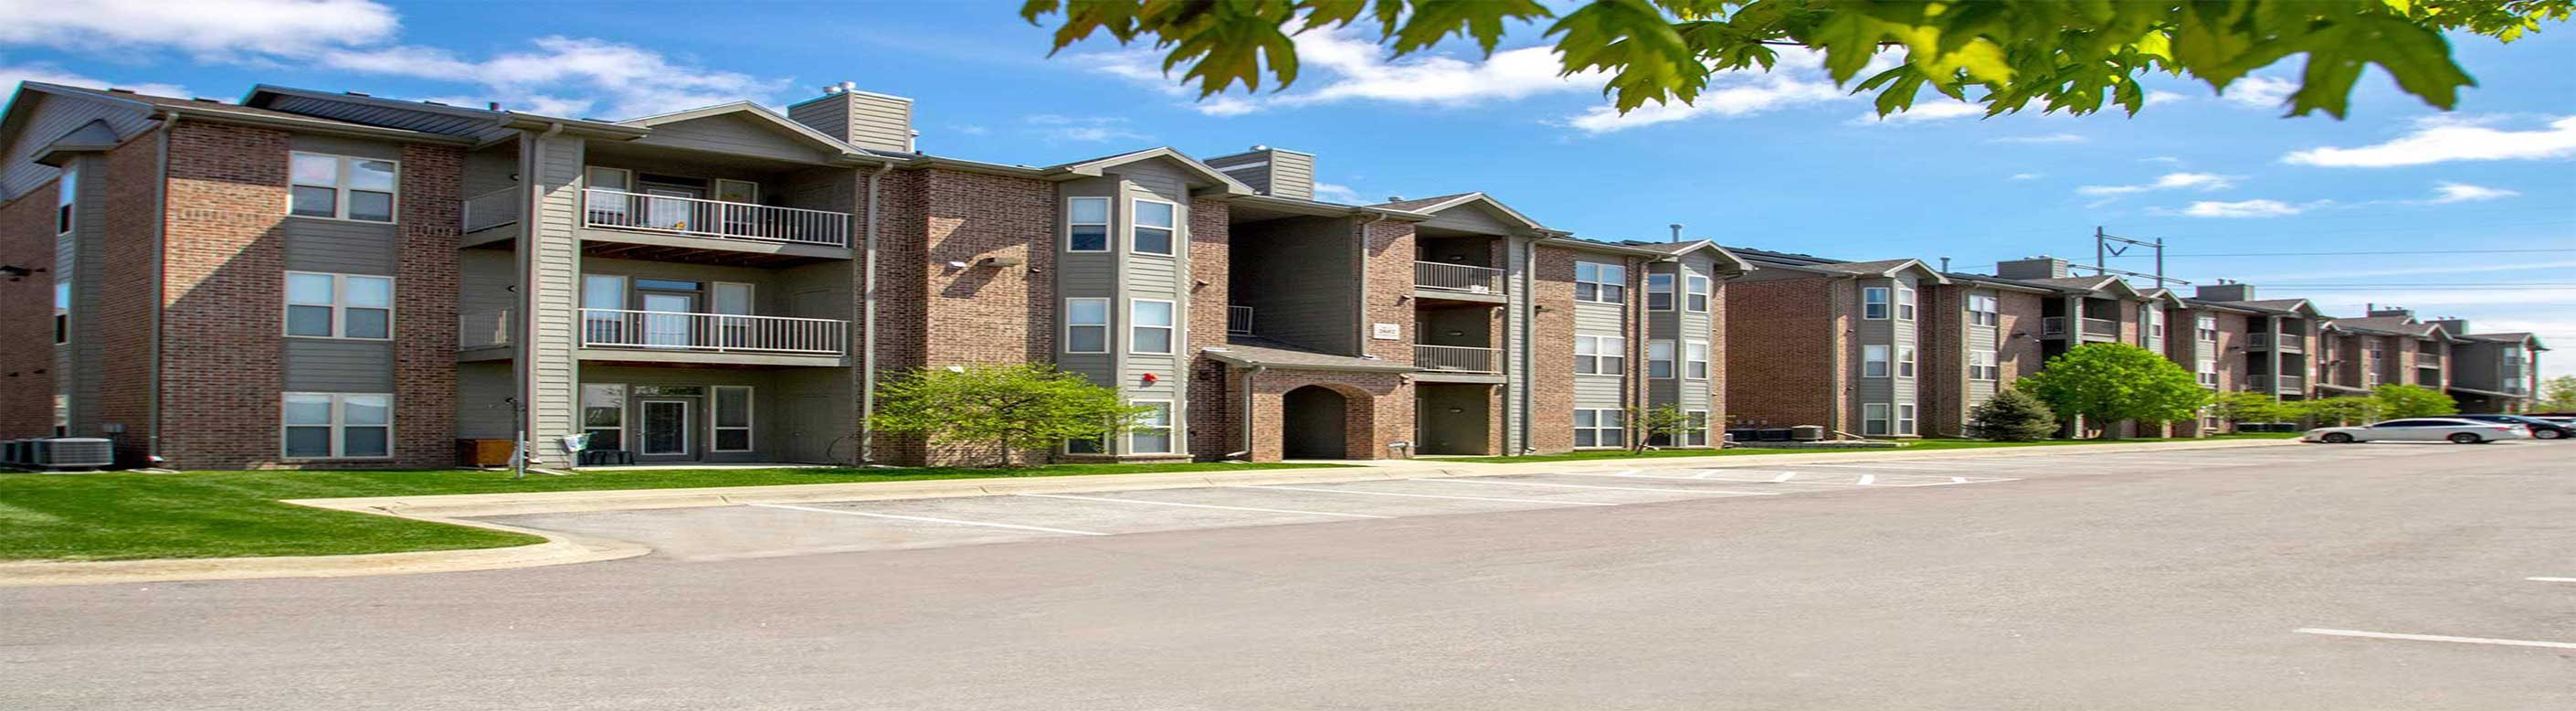 Community Exterior Overview at Whispering Hills, Omaha